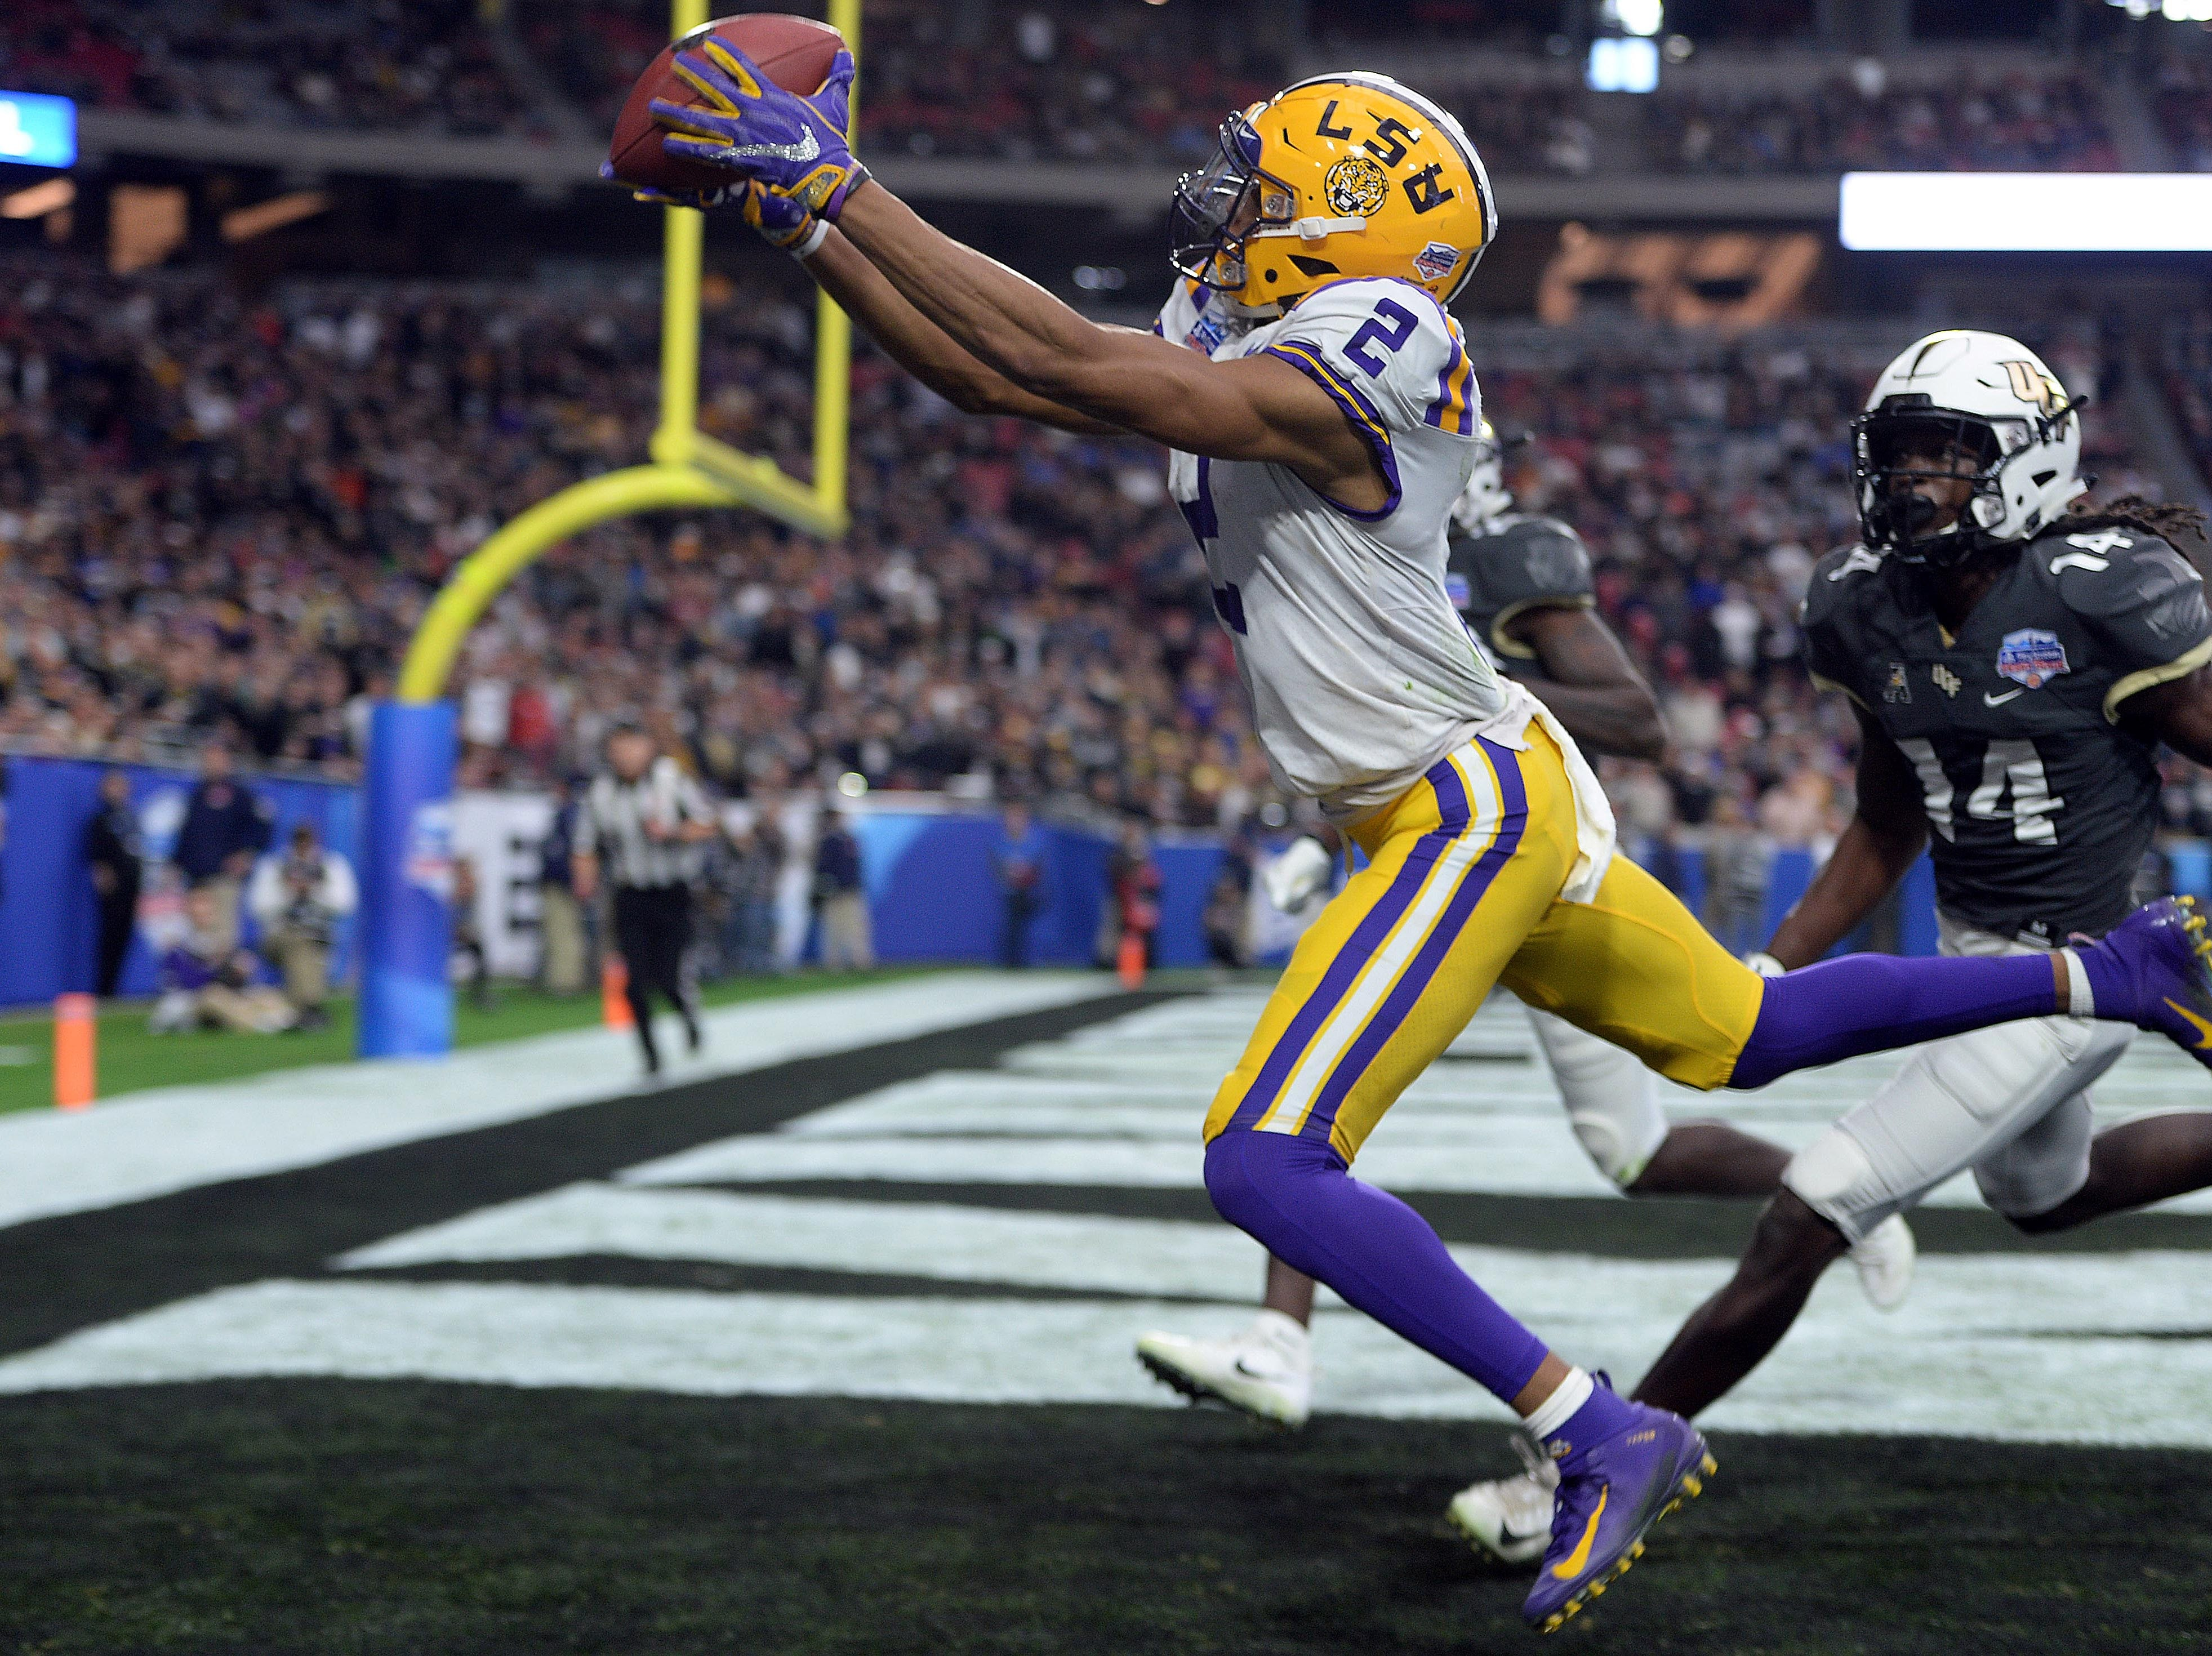 LSU Tigers wide receiver Justin Jefferson (2) catches a touchdown pass against the UCF Knights during the first half of the Fiesta Bowl.